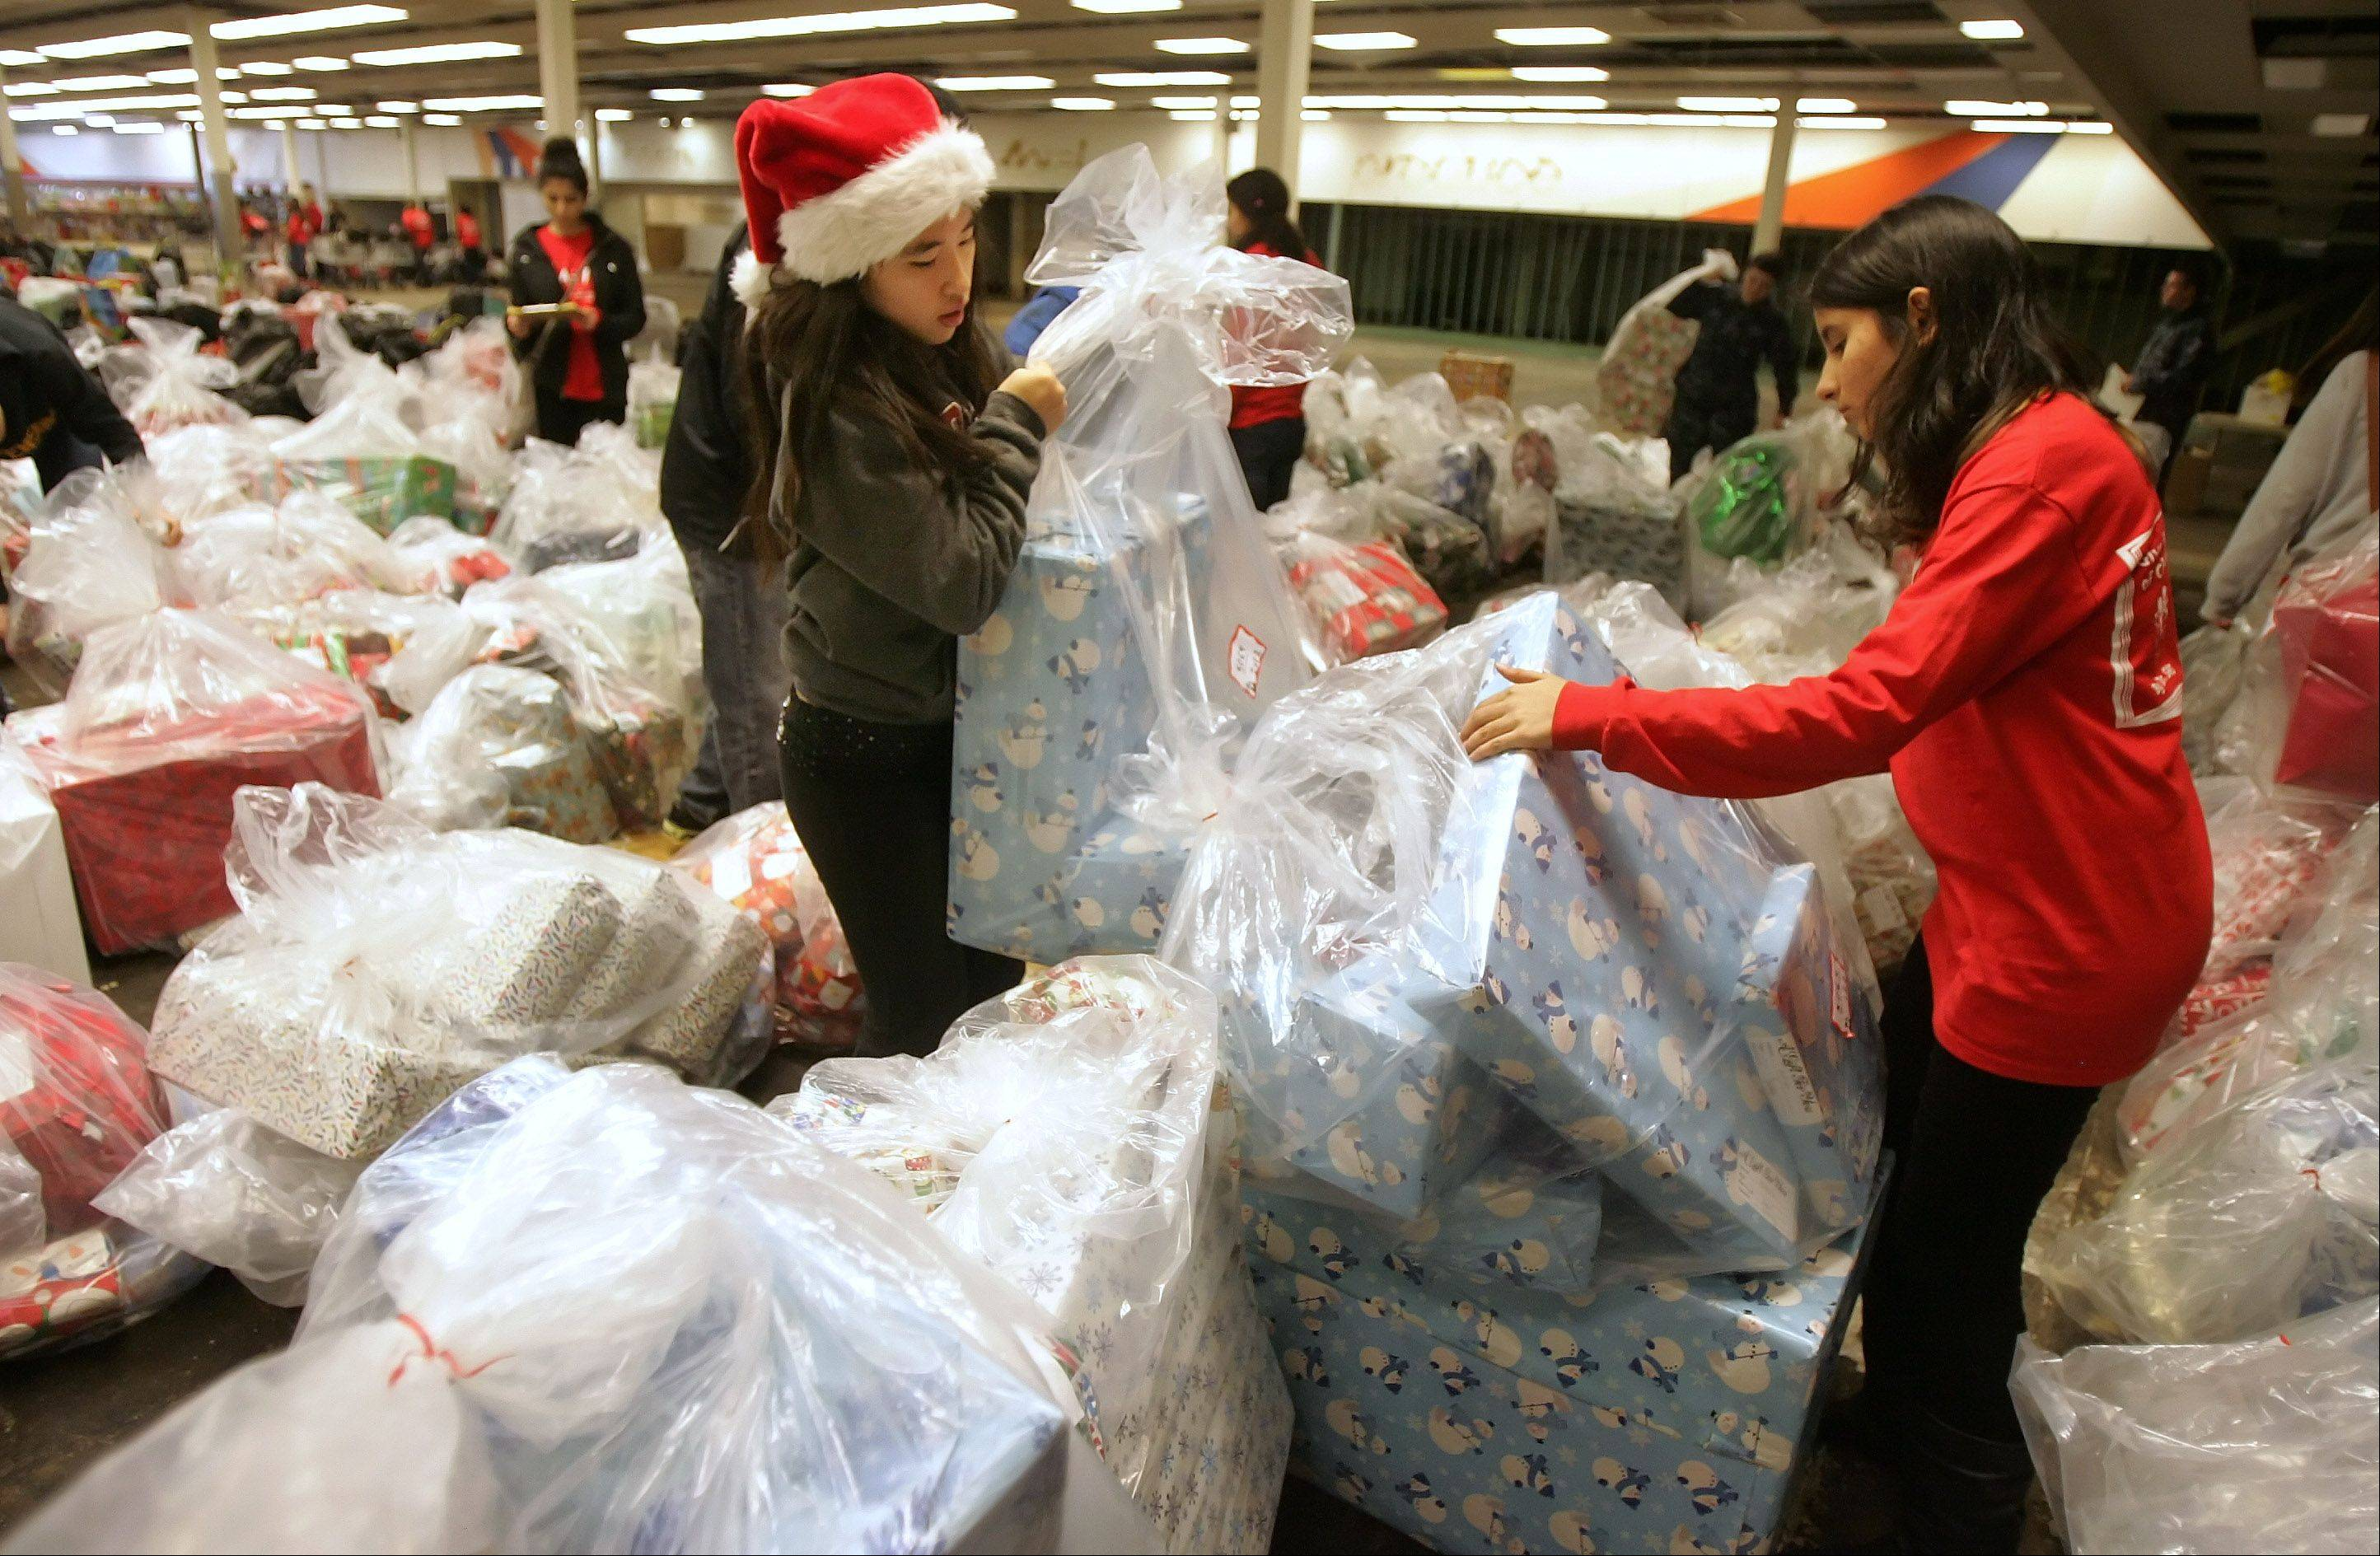 Juniors Stephanie Li, left, and Lily Barghi sort presents by family as Stevenson High School students deliver toys and gifts Wednesday for Catholic Charities' Lake County Adopt-A-Family Christmas Gift Program to the gift warehouse in Waukegan.